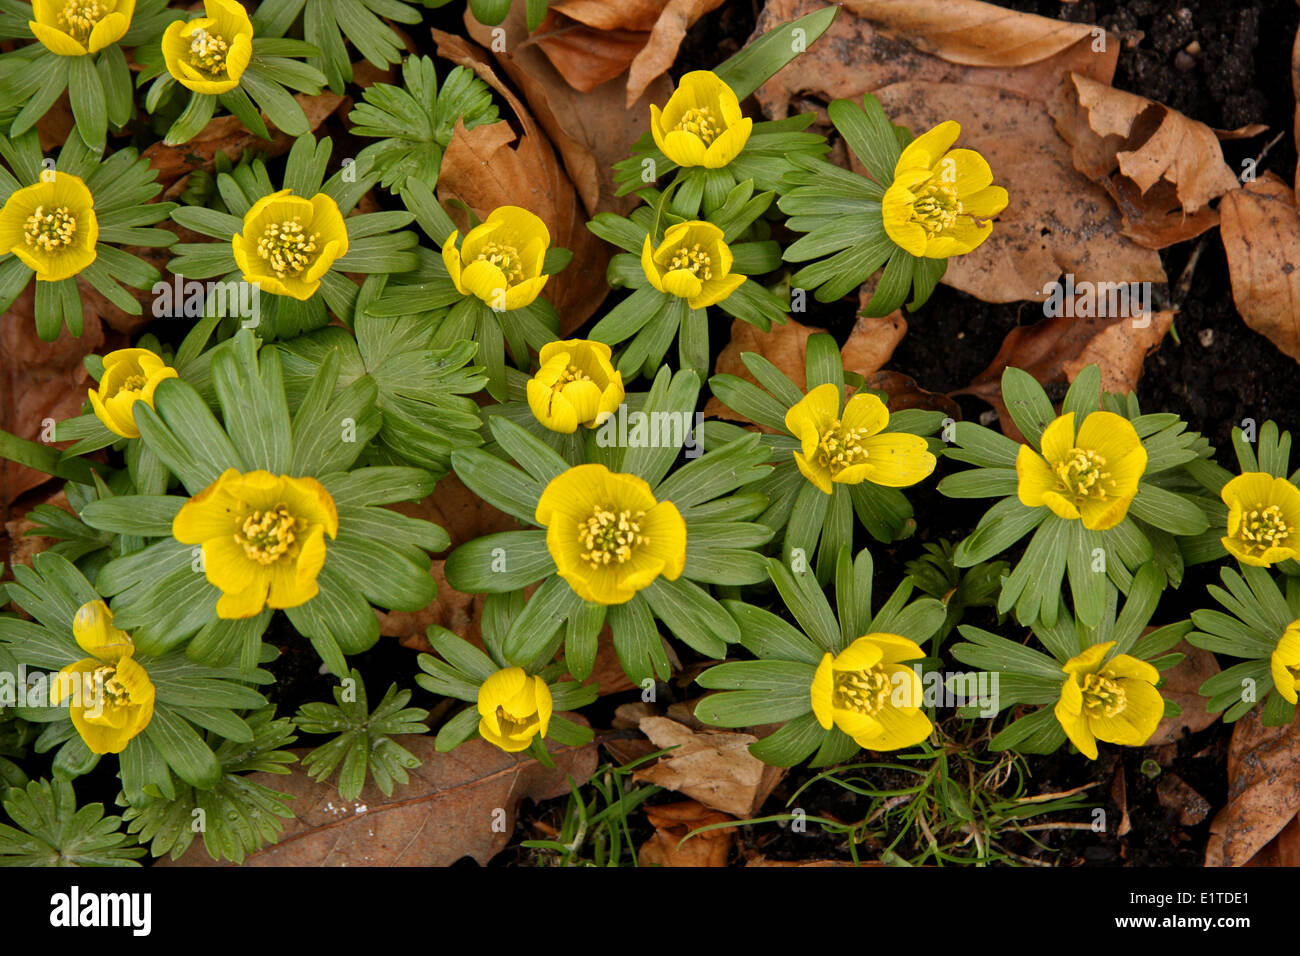 upper view of cluster of flowering specimens - Stock Image